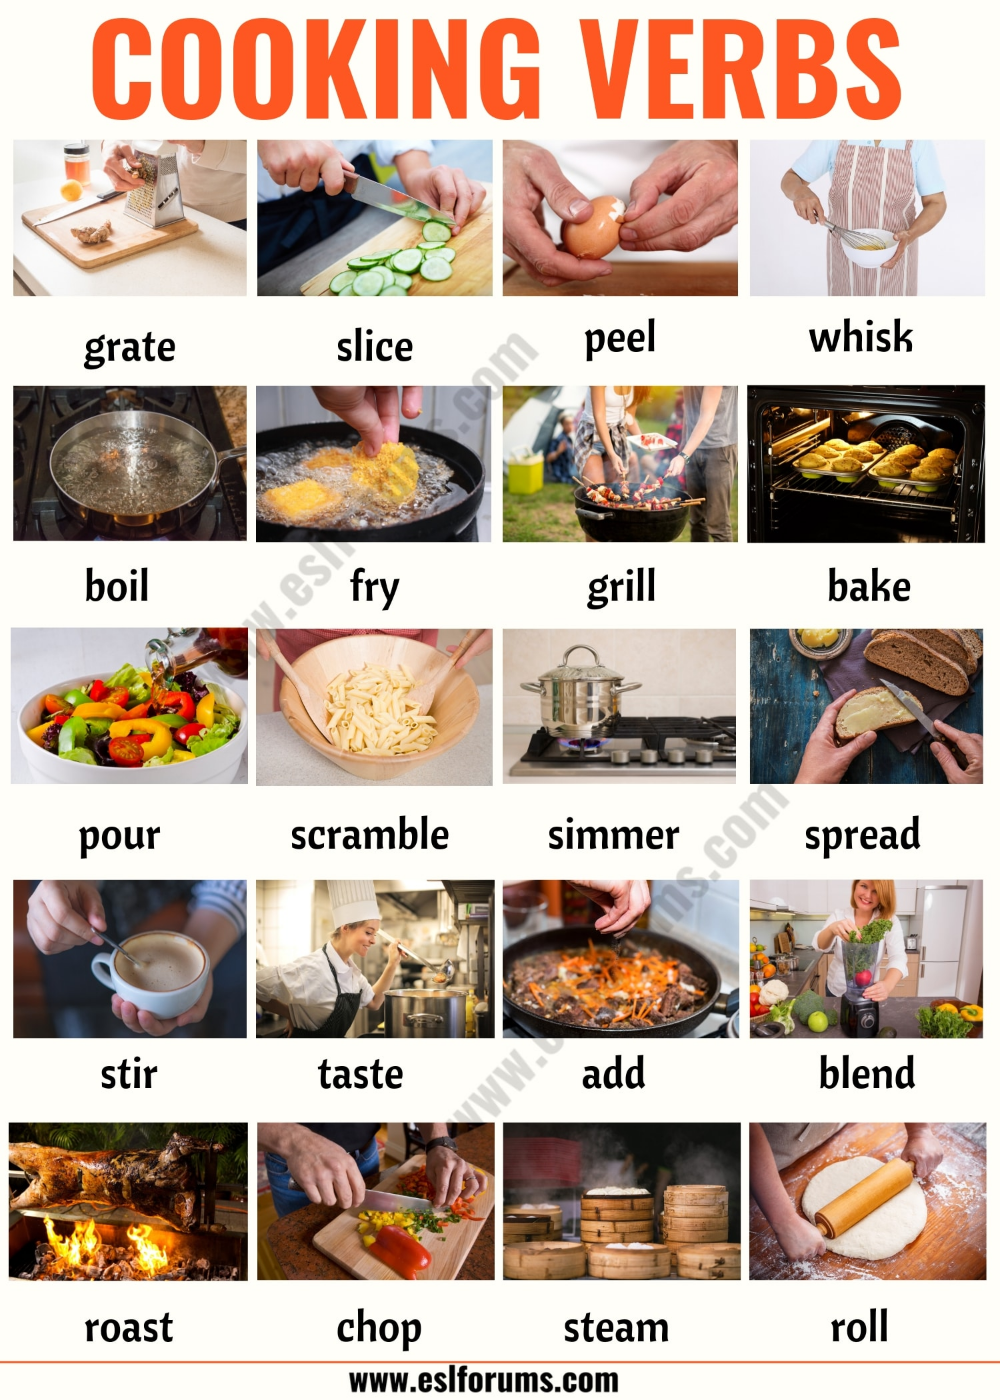 Cooking Terms List Of 20 Useful Cooking Verbs In English Esl Forums English Verbs English Learning Spoken Learn English Vocabulary